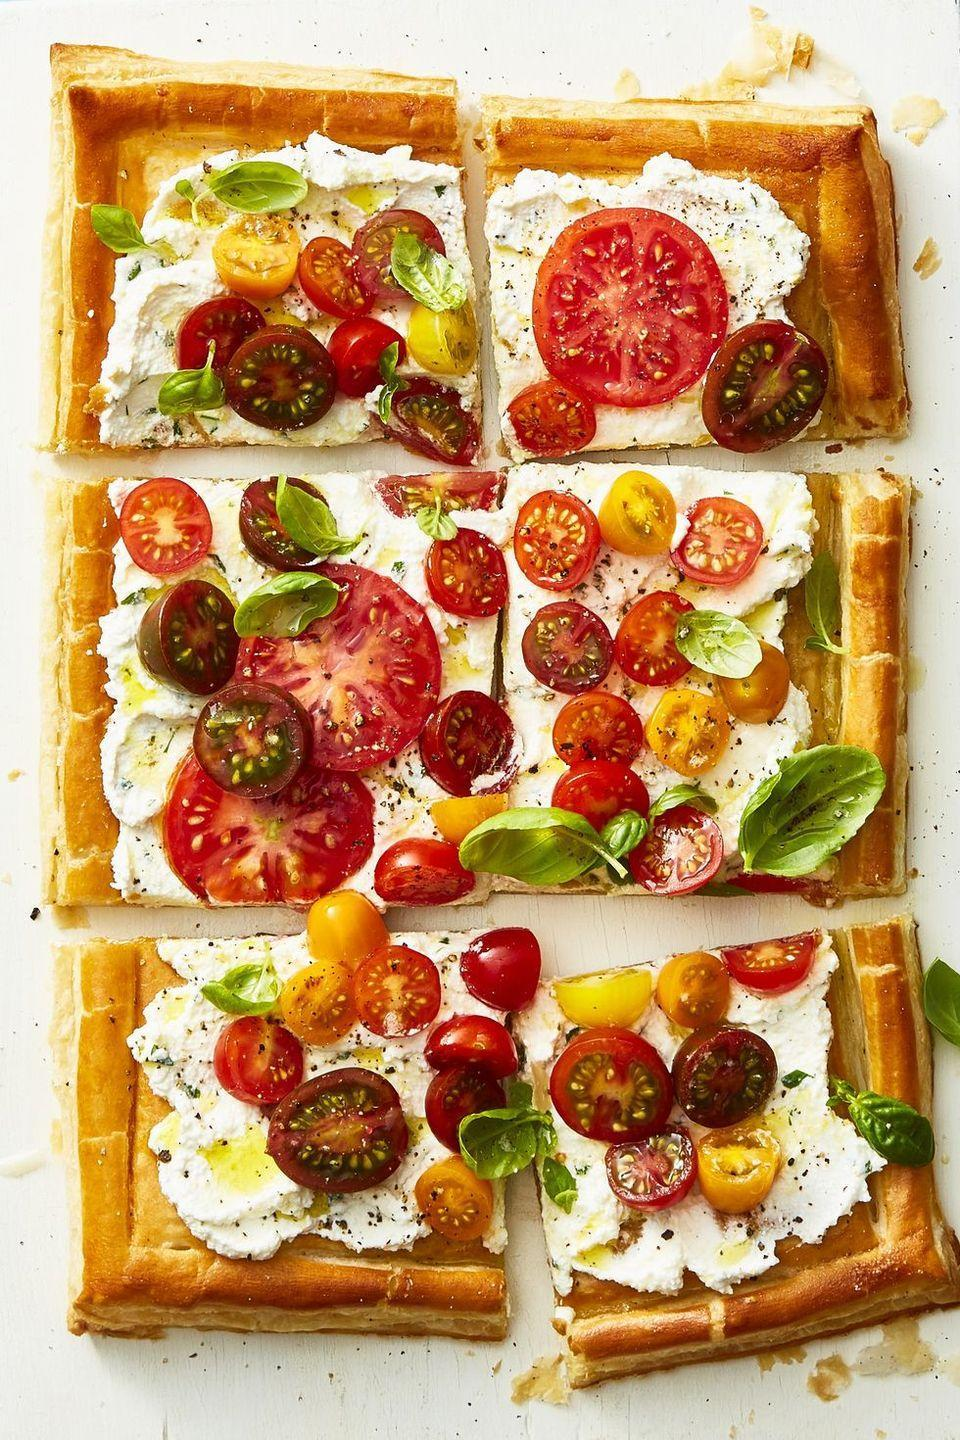 "<p>With all of the flavors of pizza, this fresh and elegant dinner is a real crowdpleaser. </p><p><em><a href=""https://www.goodhousekeeping.com/food-recipes/healthy/a22750354/herbed-ricotta-and-fresh-tomato-tart-recipe/"" rel=""nofollow noopener"" target=""_blank"" data-ylk=""slk:Get the recipe for Herbed Ricotta and Fresh Tomato Tart »"" class=""link rapid-noclick-resp"">Get the recipe for Herbed Ricotta and Fresh Tomato Tart »</a></em></p>"